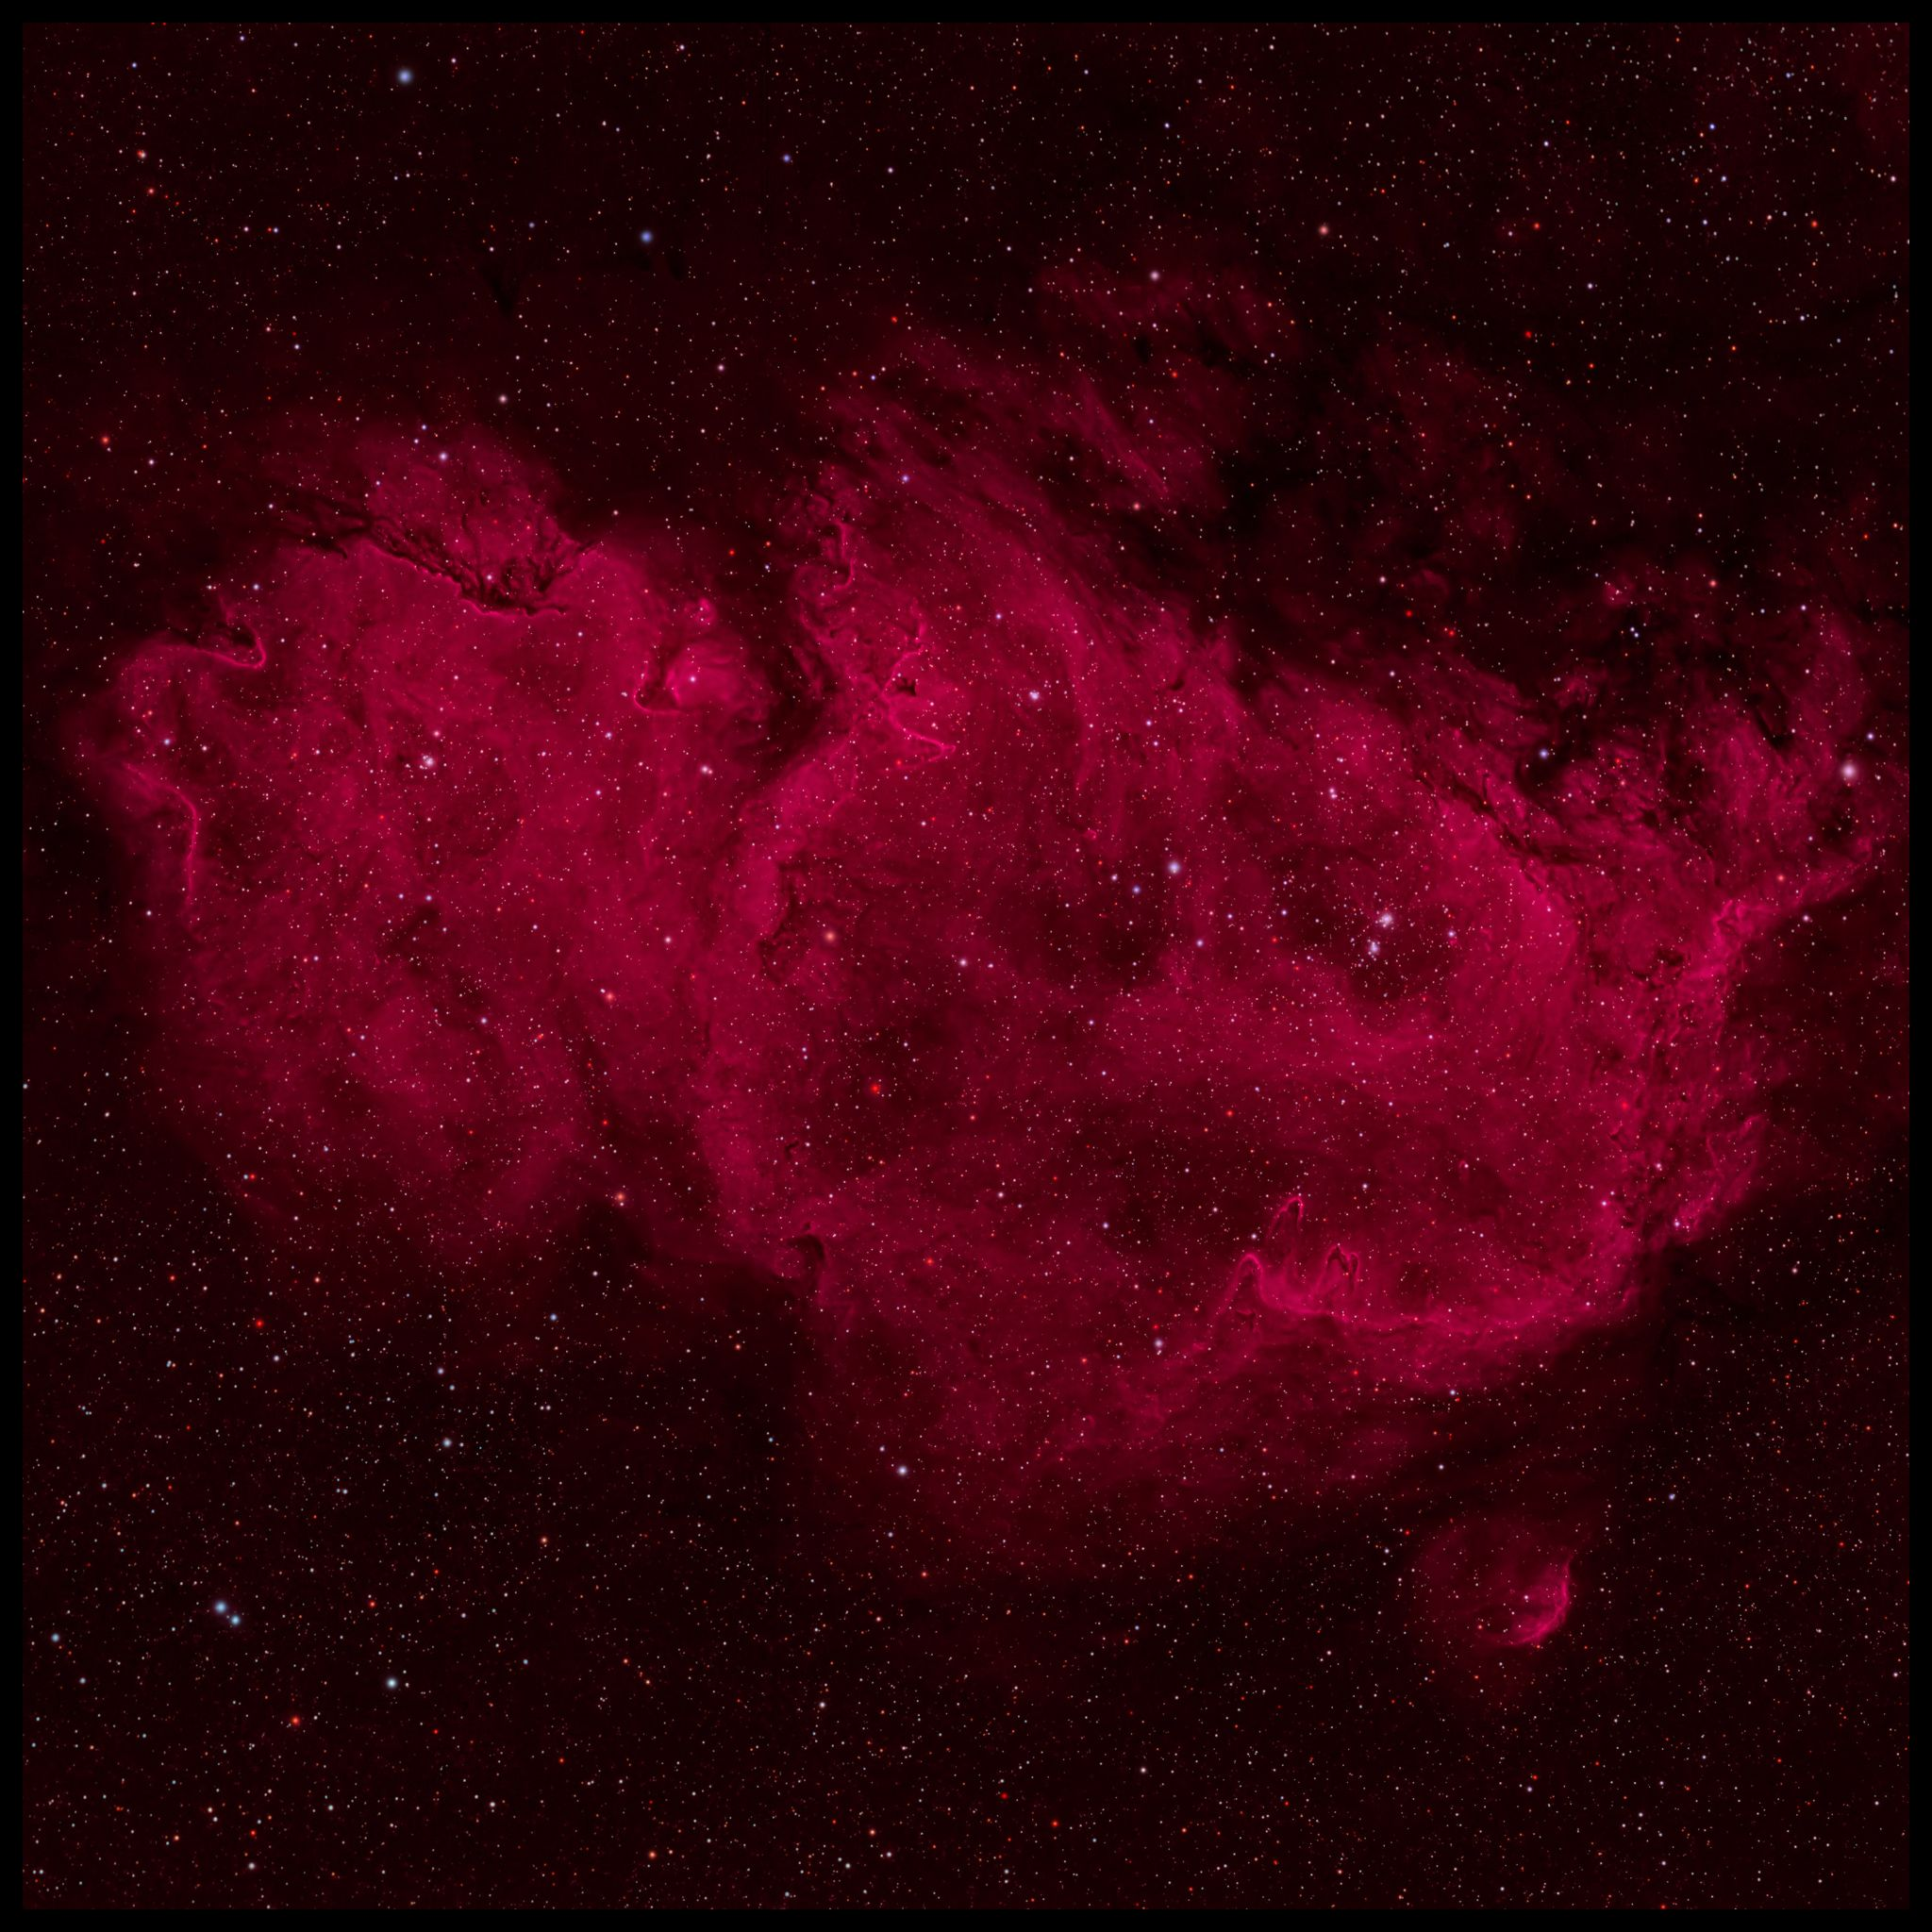 Stars are forming in the Soul of the Queen of Aethopia. A large star forming region called the Soul Nebula can be found in the direction of the constellation Cassiopeia, who Greek mythology credits as the vain wife of a King who ruled lands surrounding the upper Nile river. The Soul Nebula houses several open clusters of stars, a large radio source known as W5, and huge evacuated bubbles formed by the winds of young massive stars.